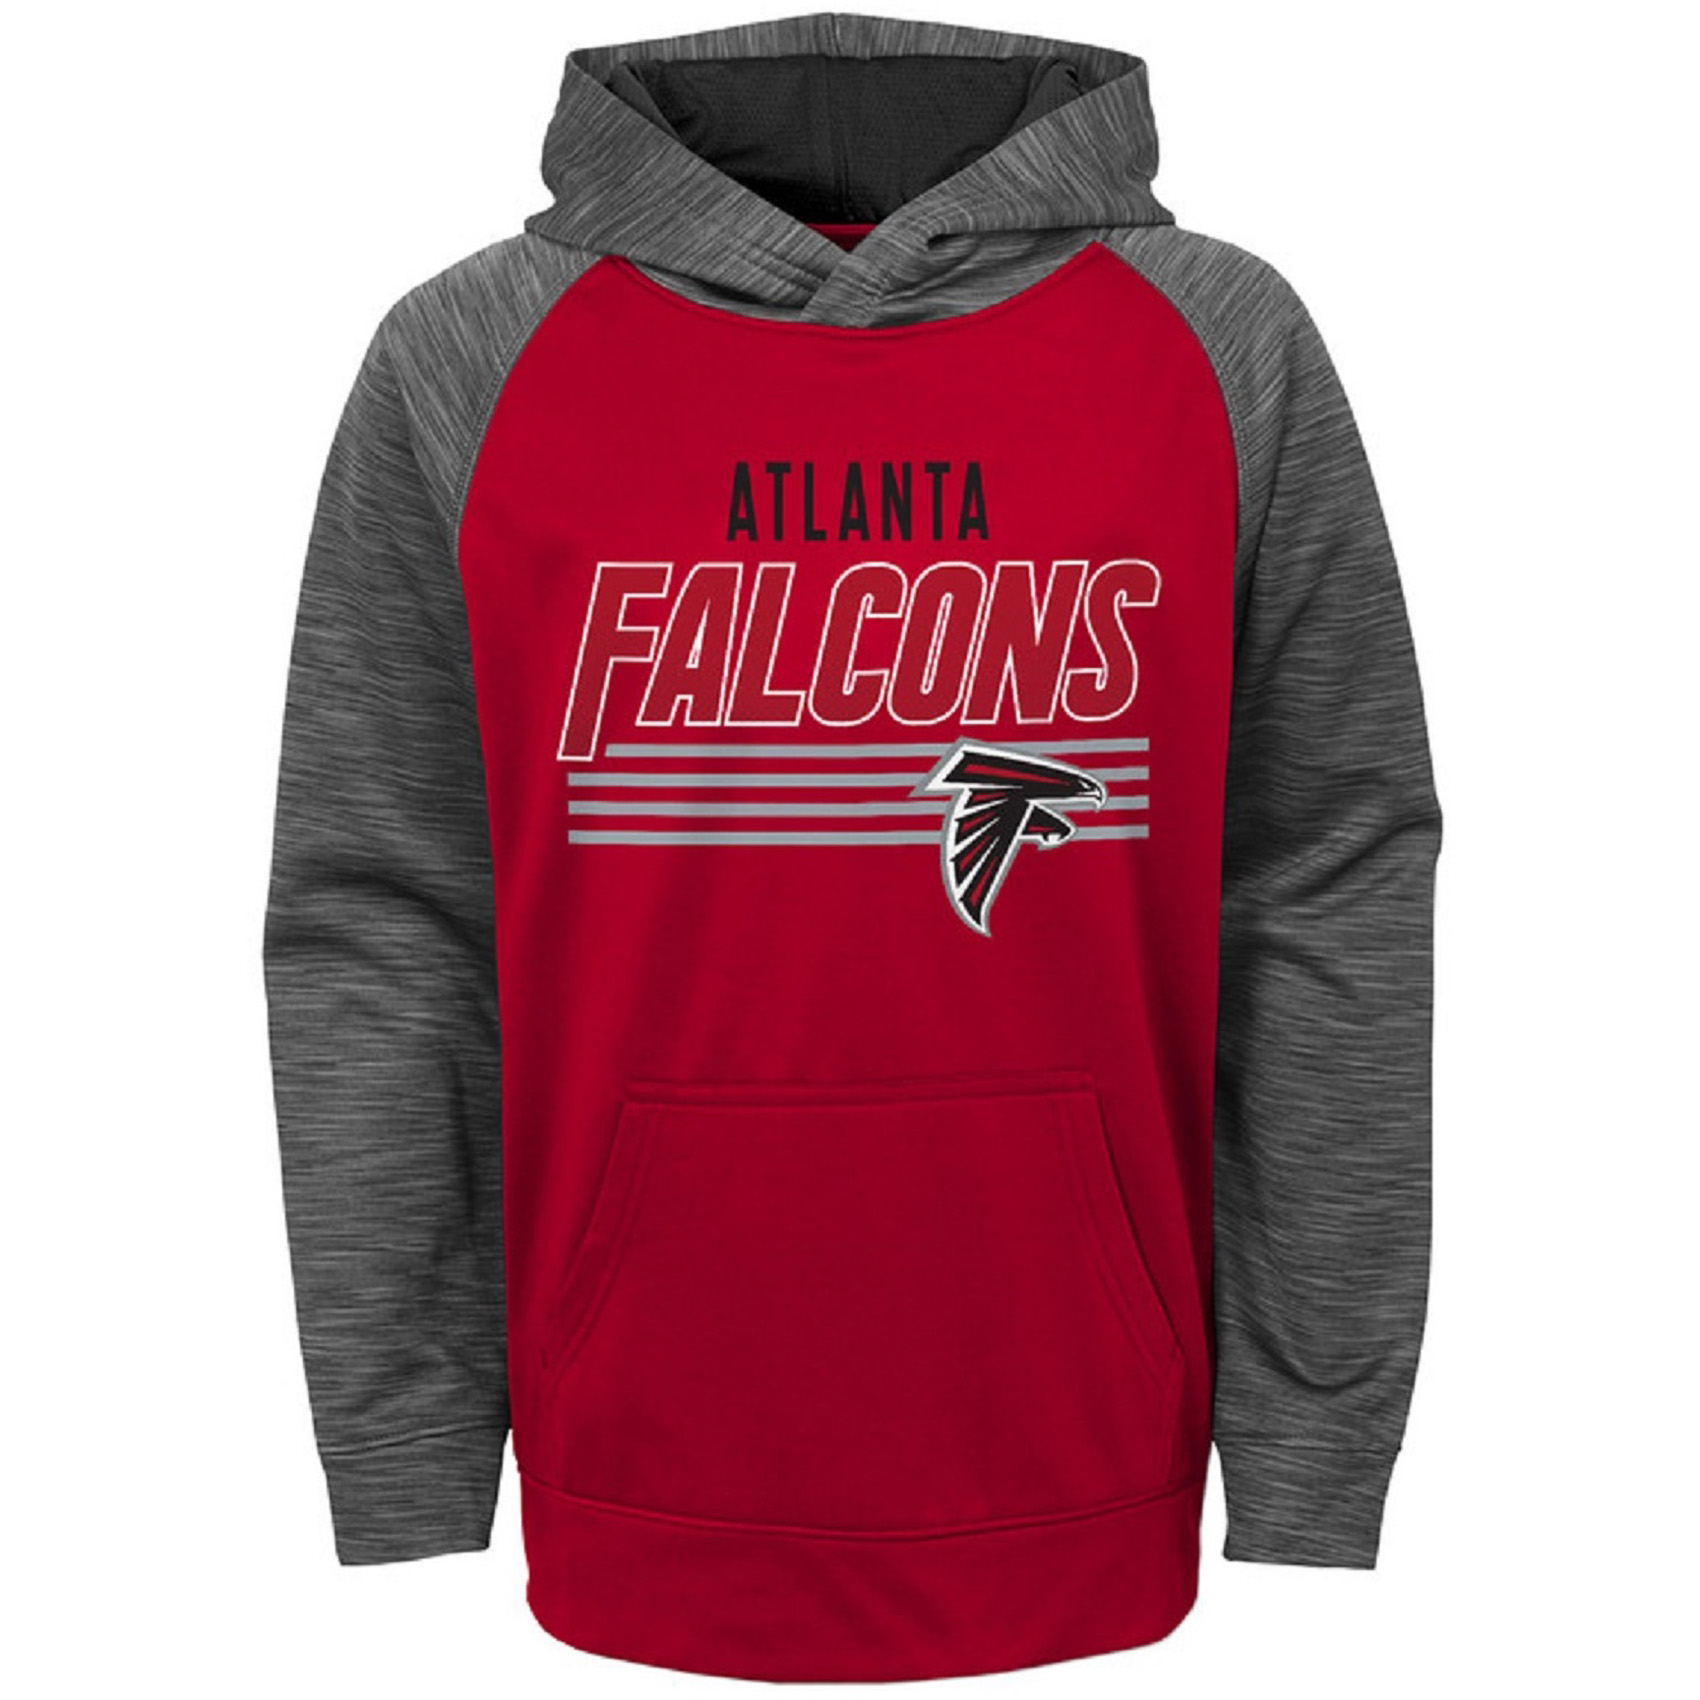 Toddler Red Atlanta Falcons Fleece Hoodie